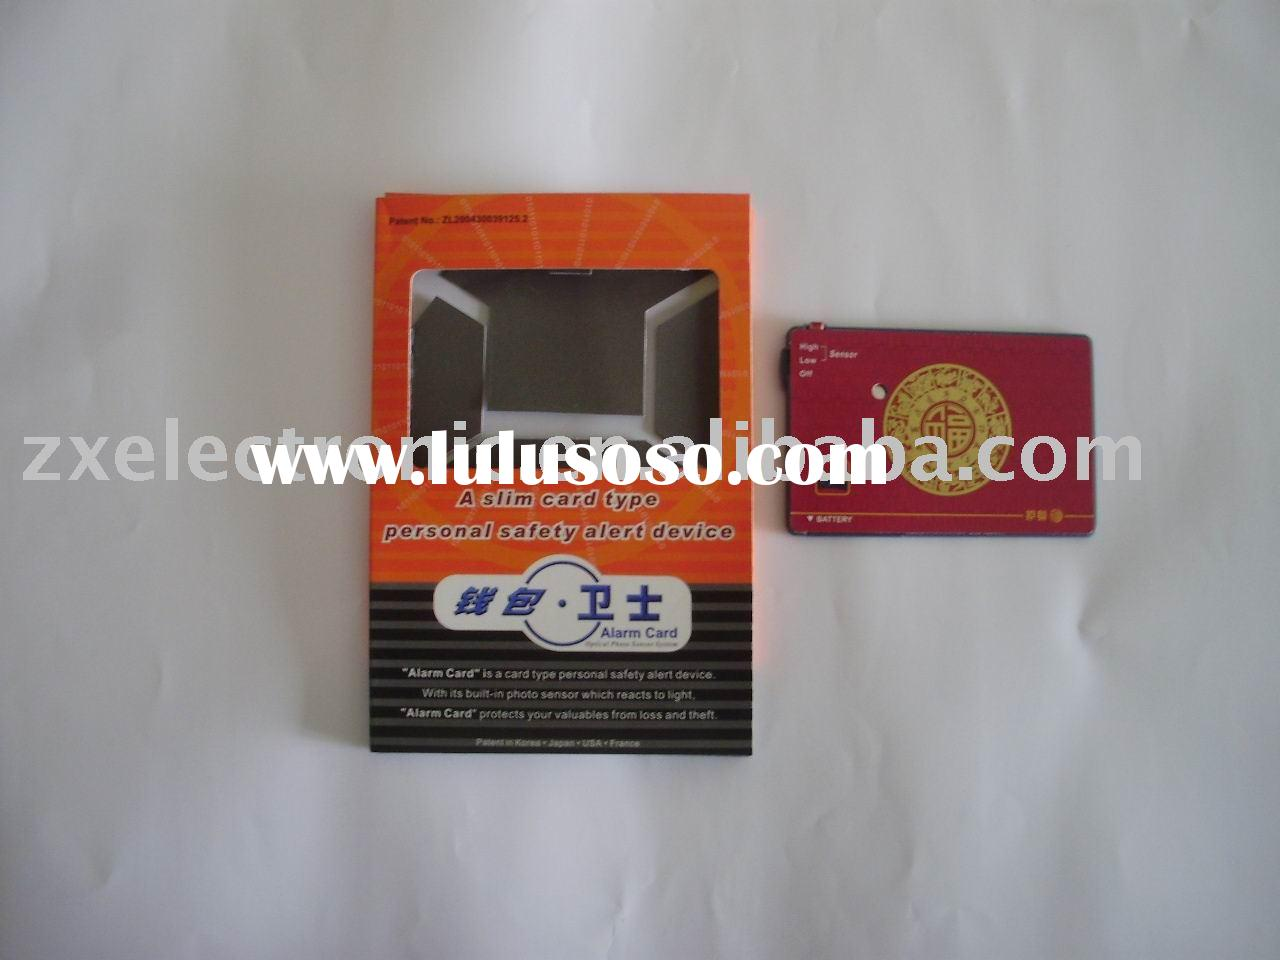 all kinds of  Wallet Alarm Card for personal safety alert device